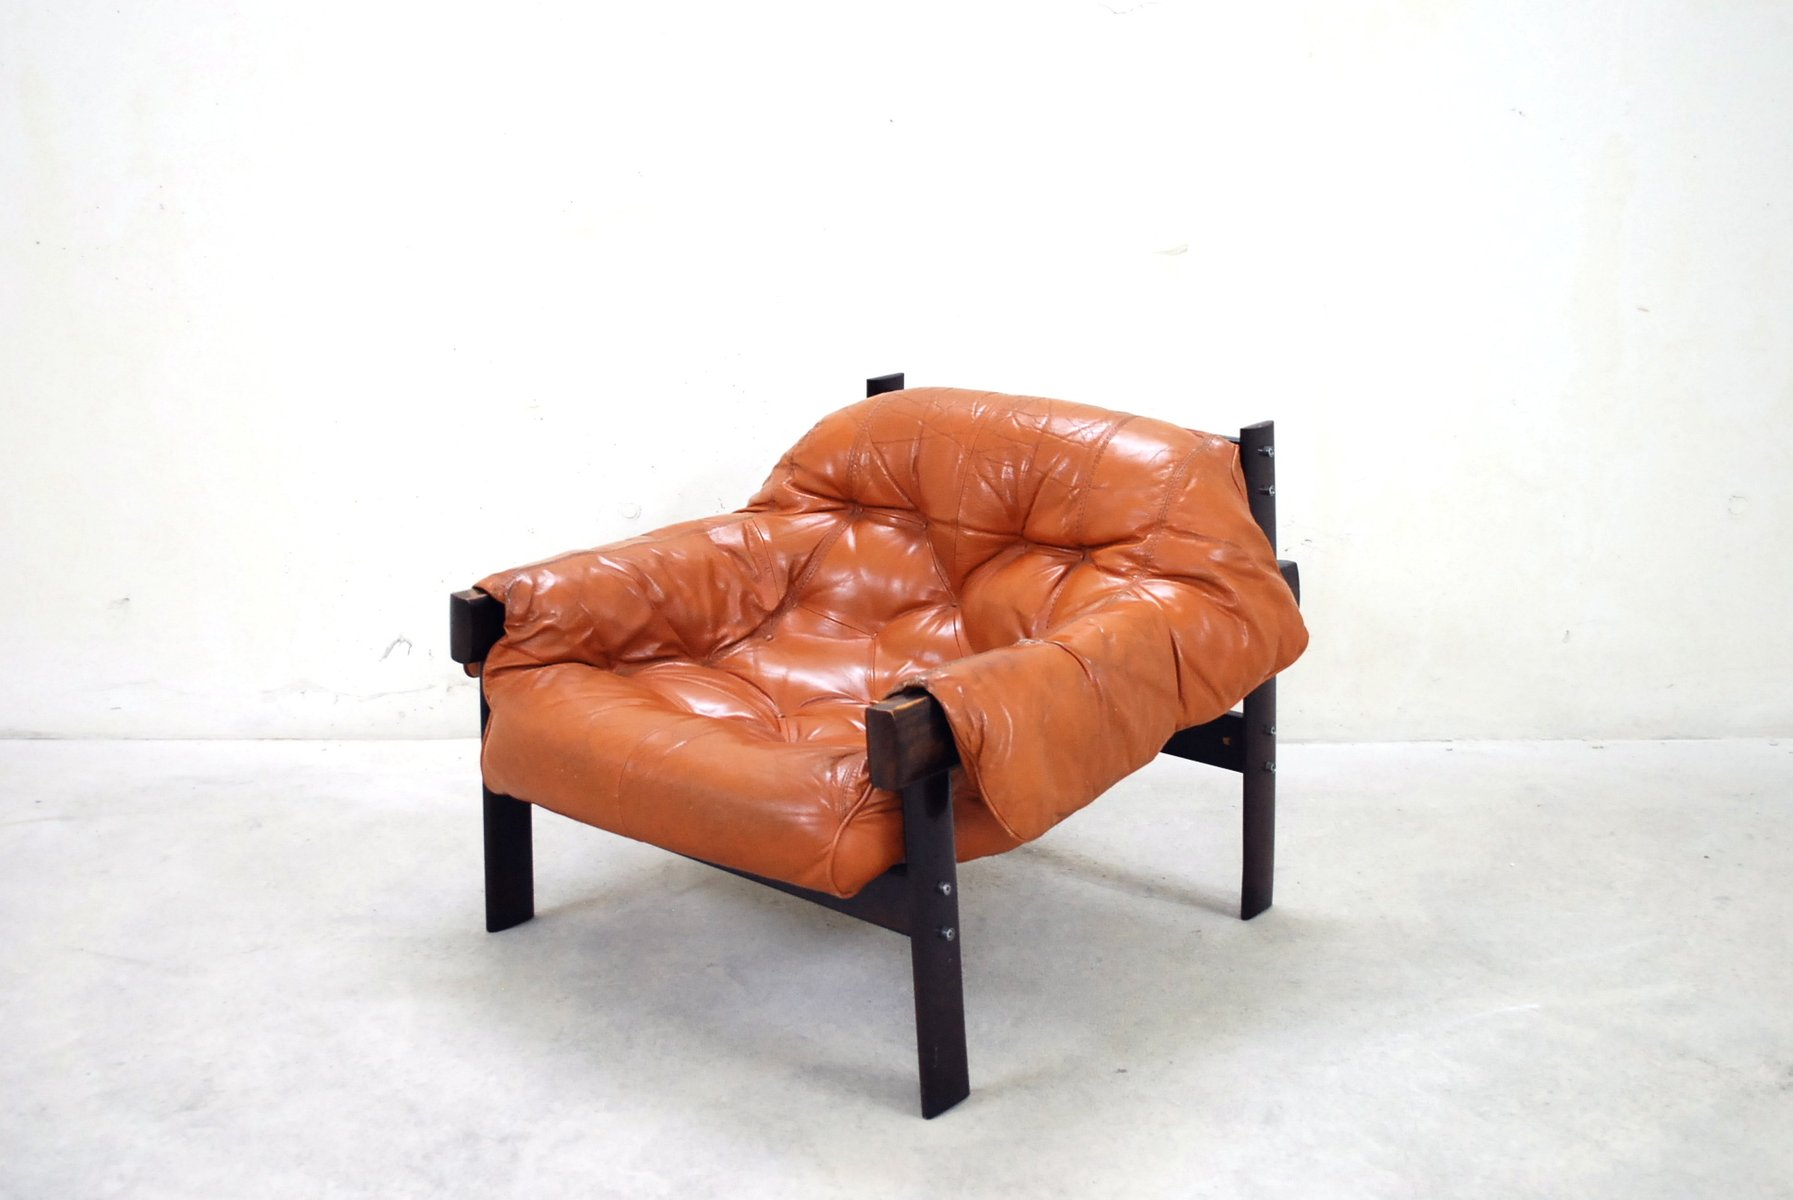 brazilian leather lounge chair by percival lafer for sale at pamono - brazilian leather lounge chair by percival lafer